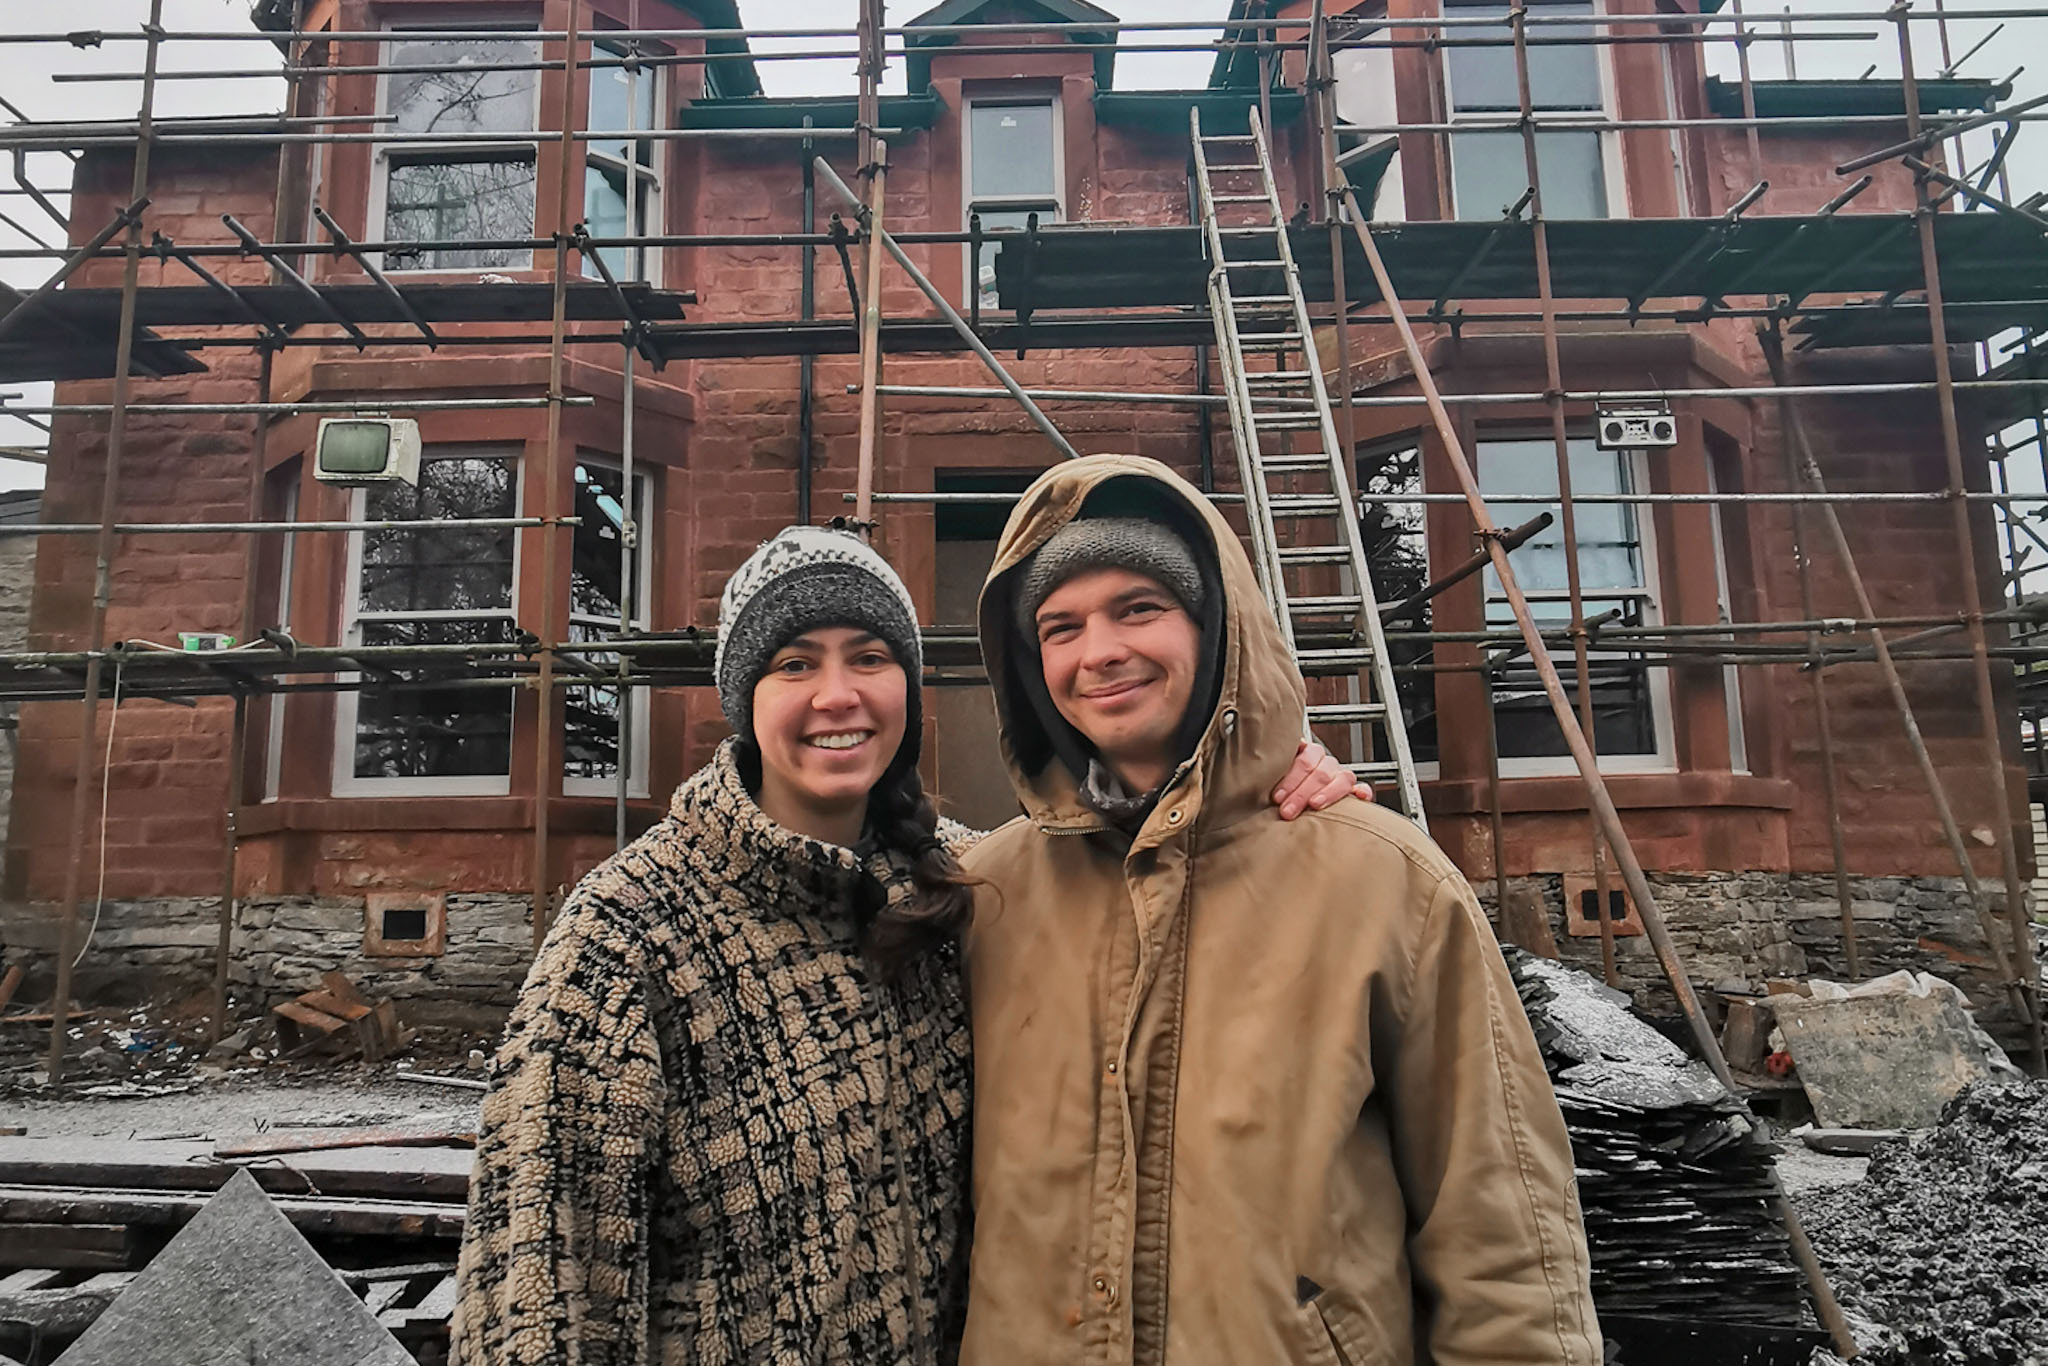 'We Accidentally Bought A 120 Year Old Derelict House' - Newsweek